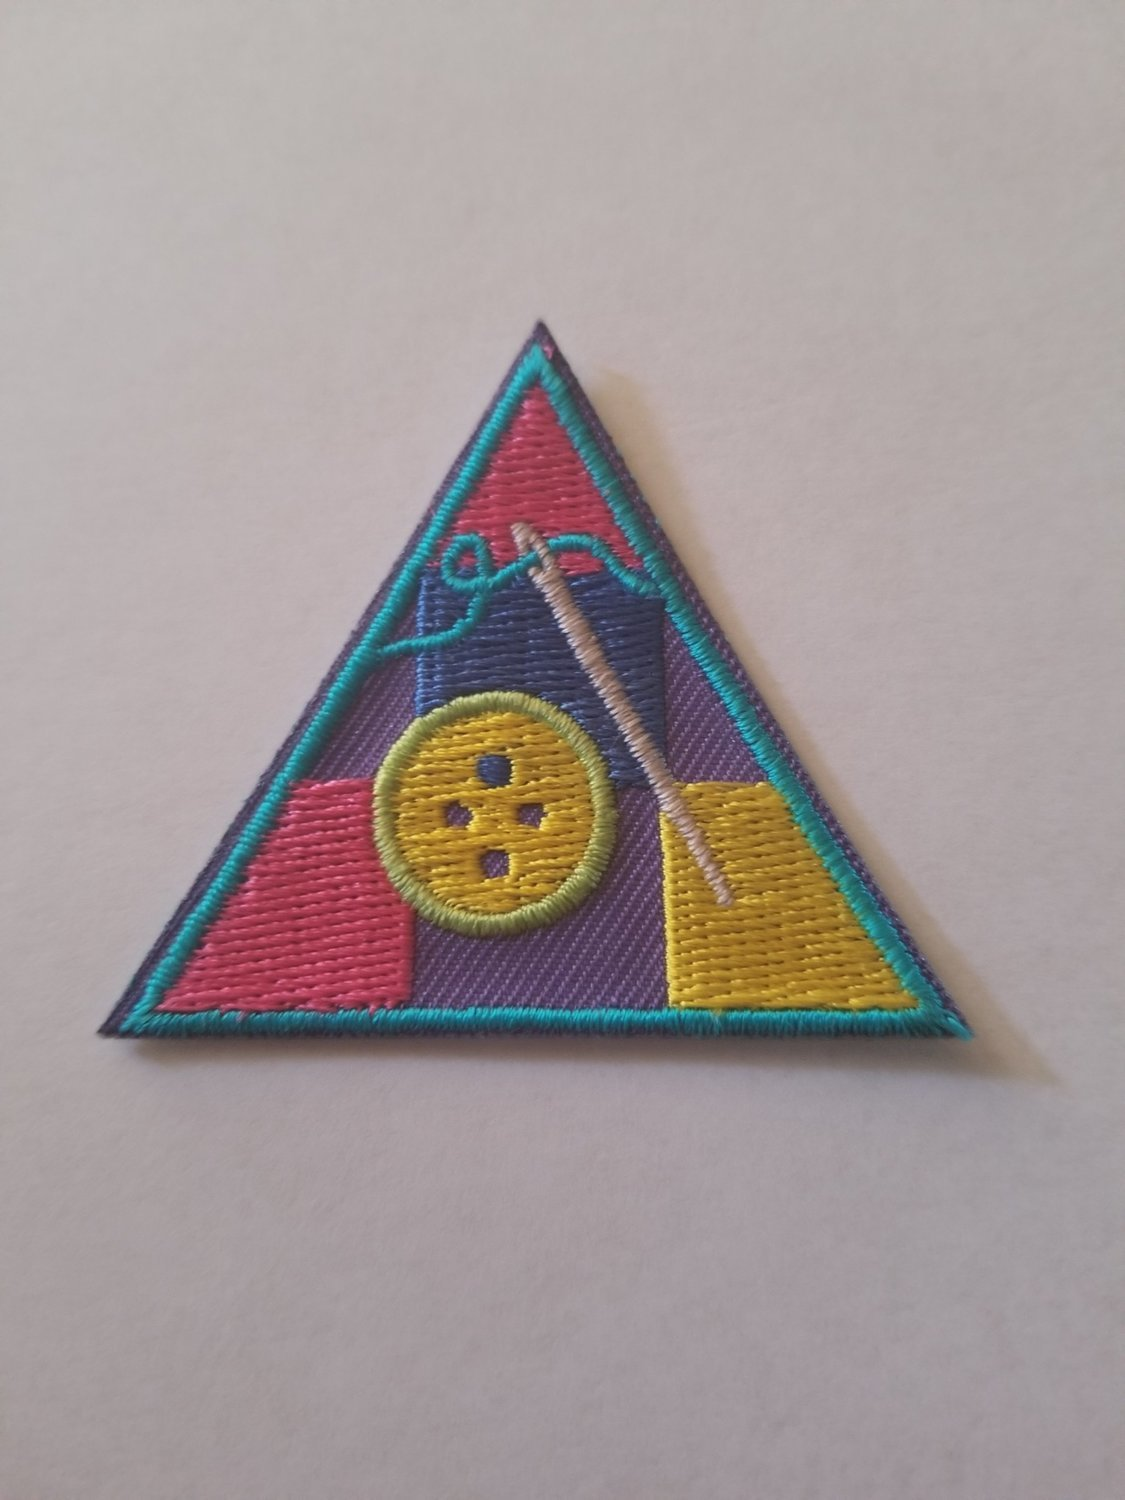 Sewing Triangle *PRE-ORDER*